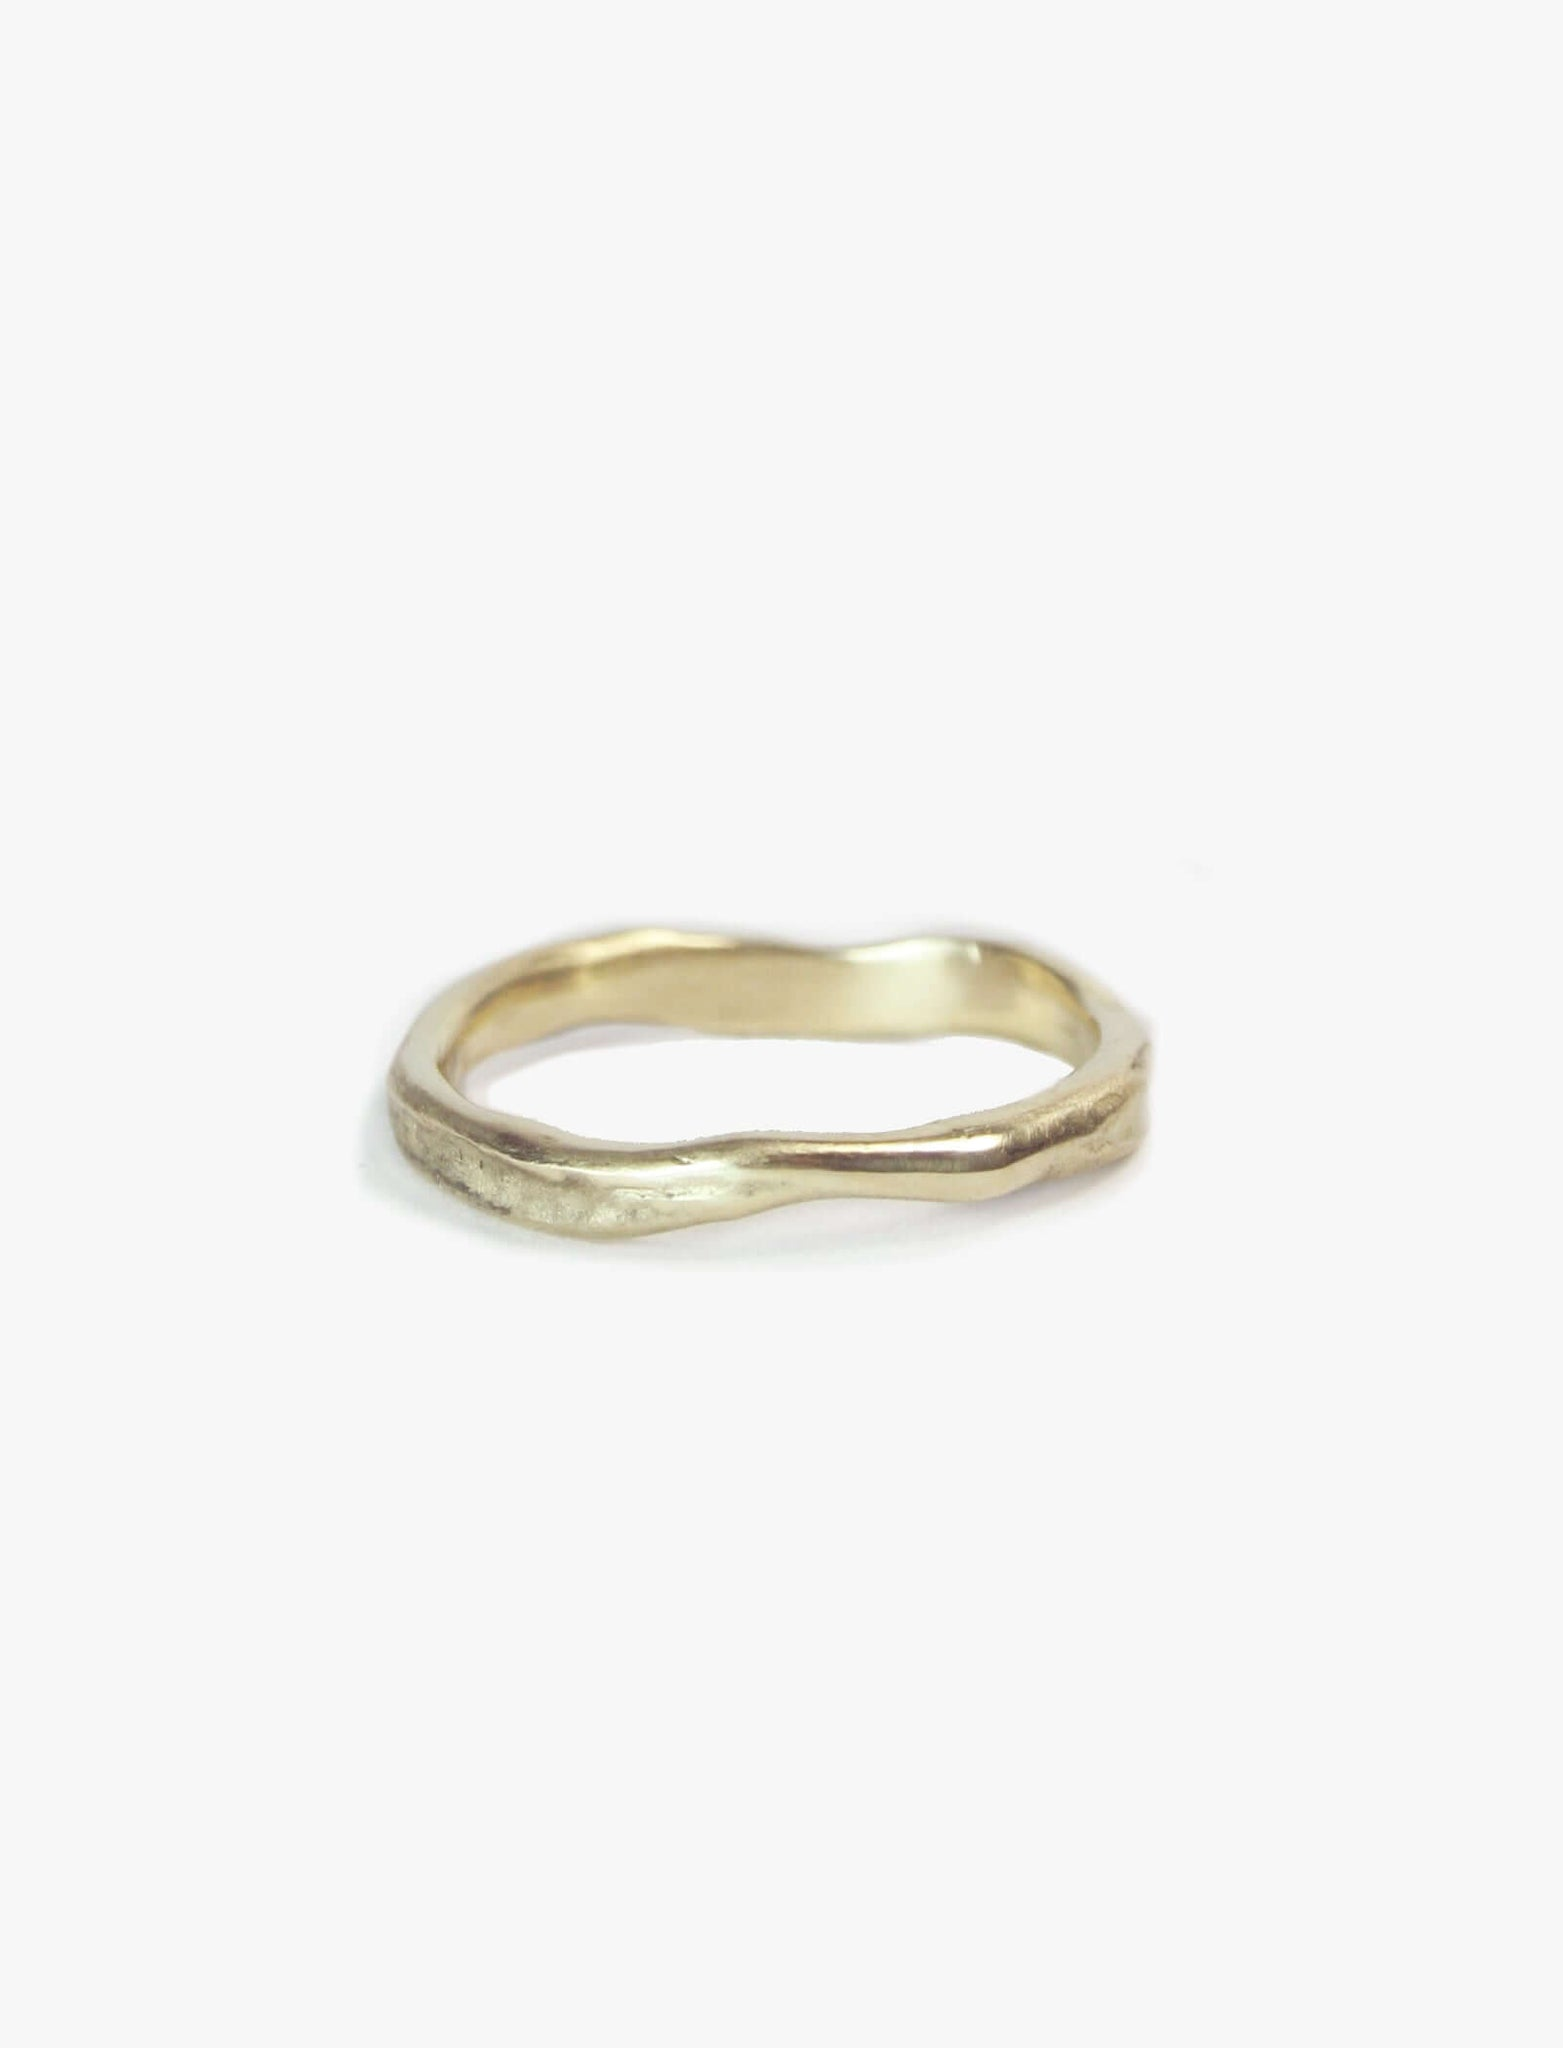 Molten Band 14K Gold Engagement/Wedding Macha Studio, Brooklyn NYC